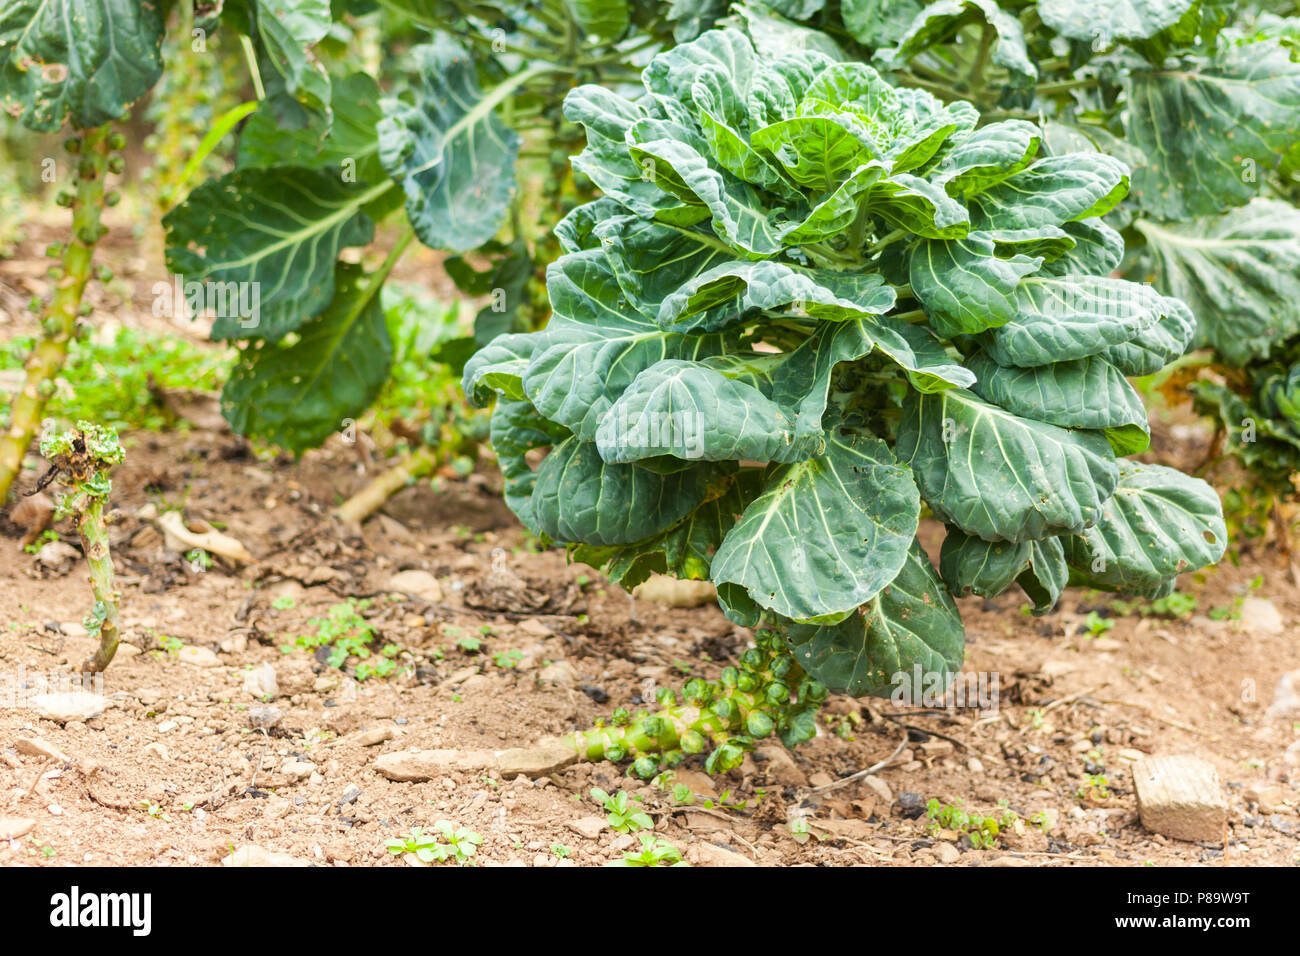 how to grow brussel sprouts uk